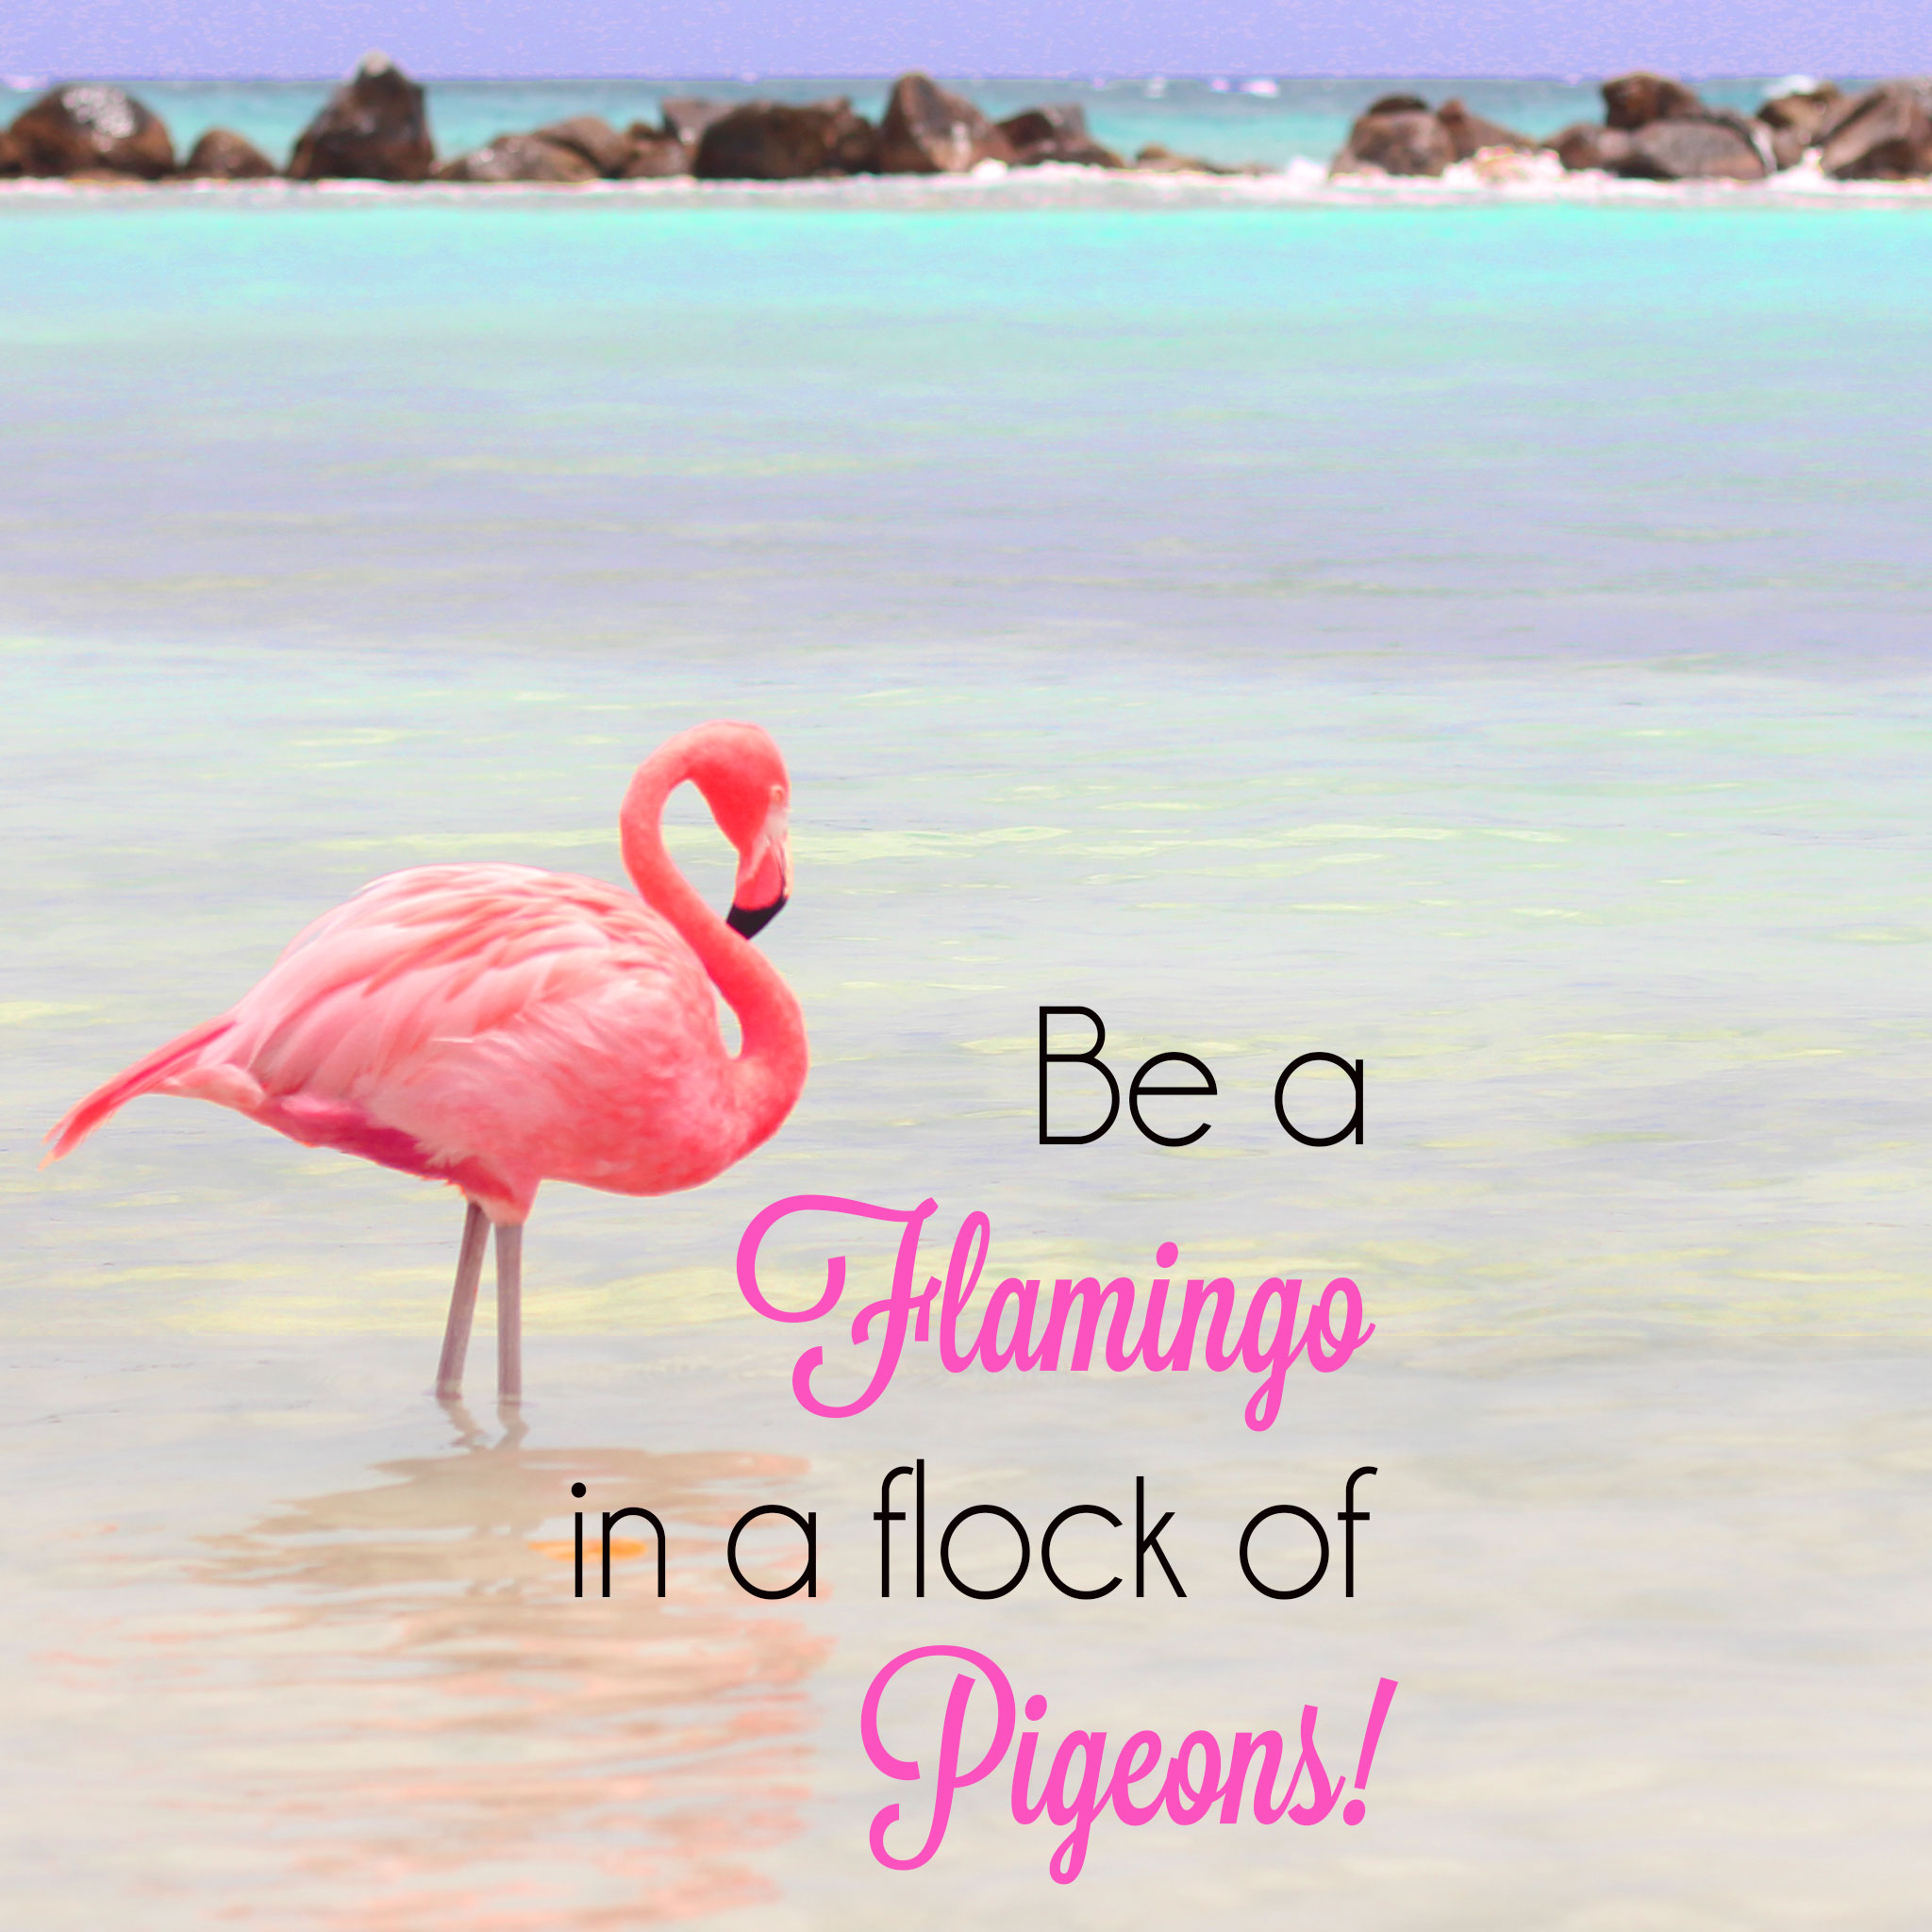 Background flamingo flamingos iphone wallpaper wallpaper - Ipad Or Tablet Background Right Click Image To Open In New Page And Save Full Resolution File Be A Flamingo In A Flock Of Pigeons Iphone Wallpaper